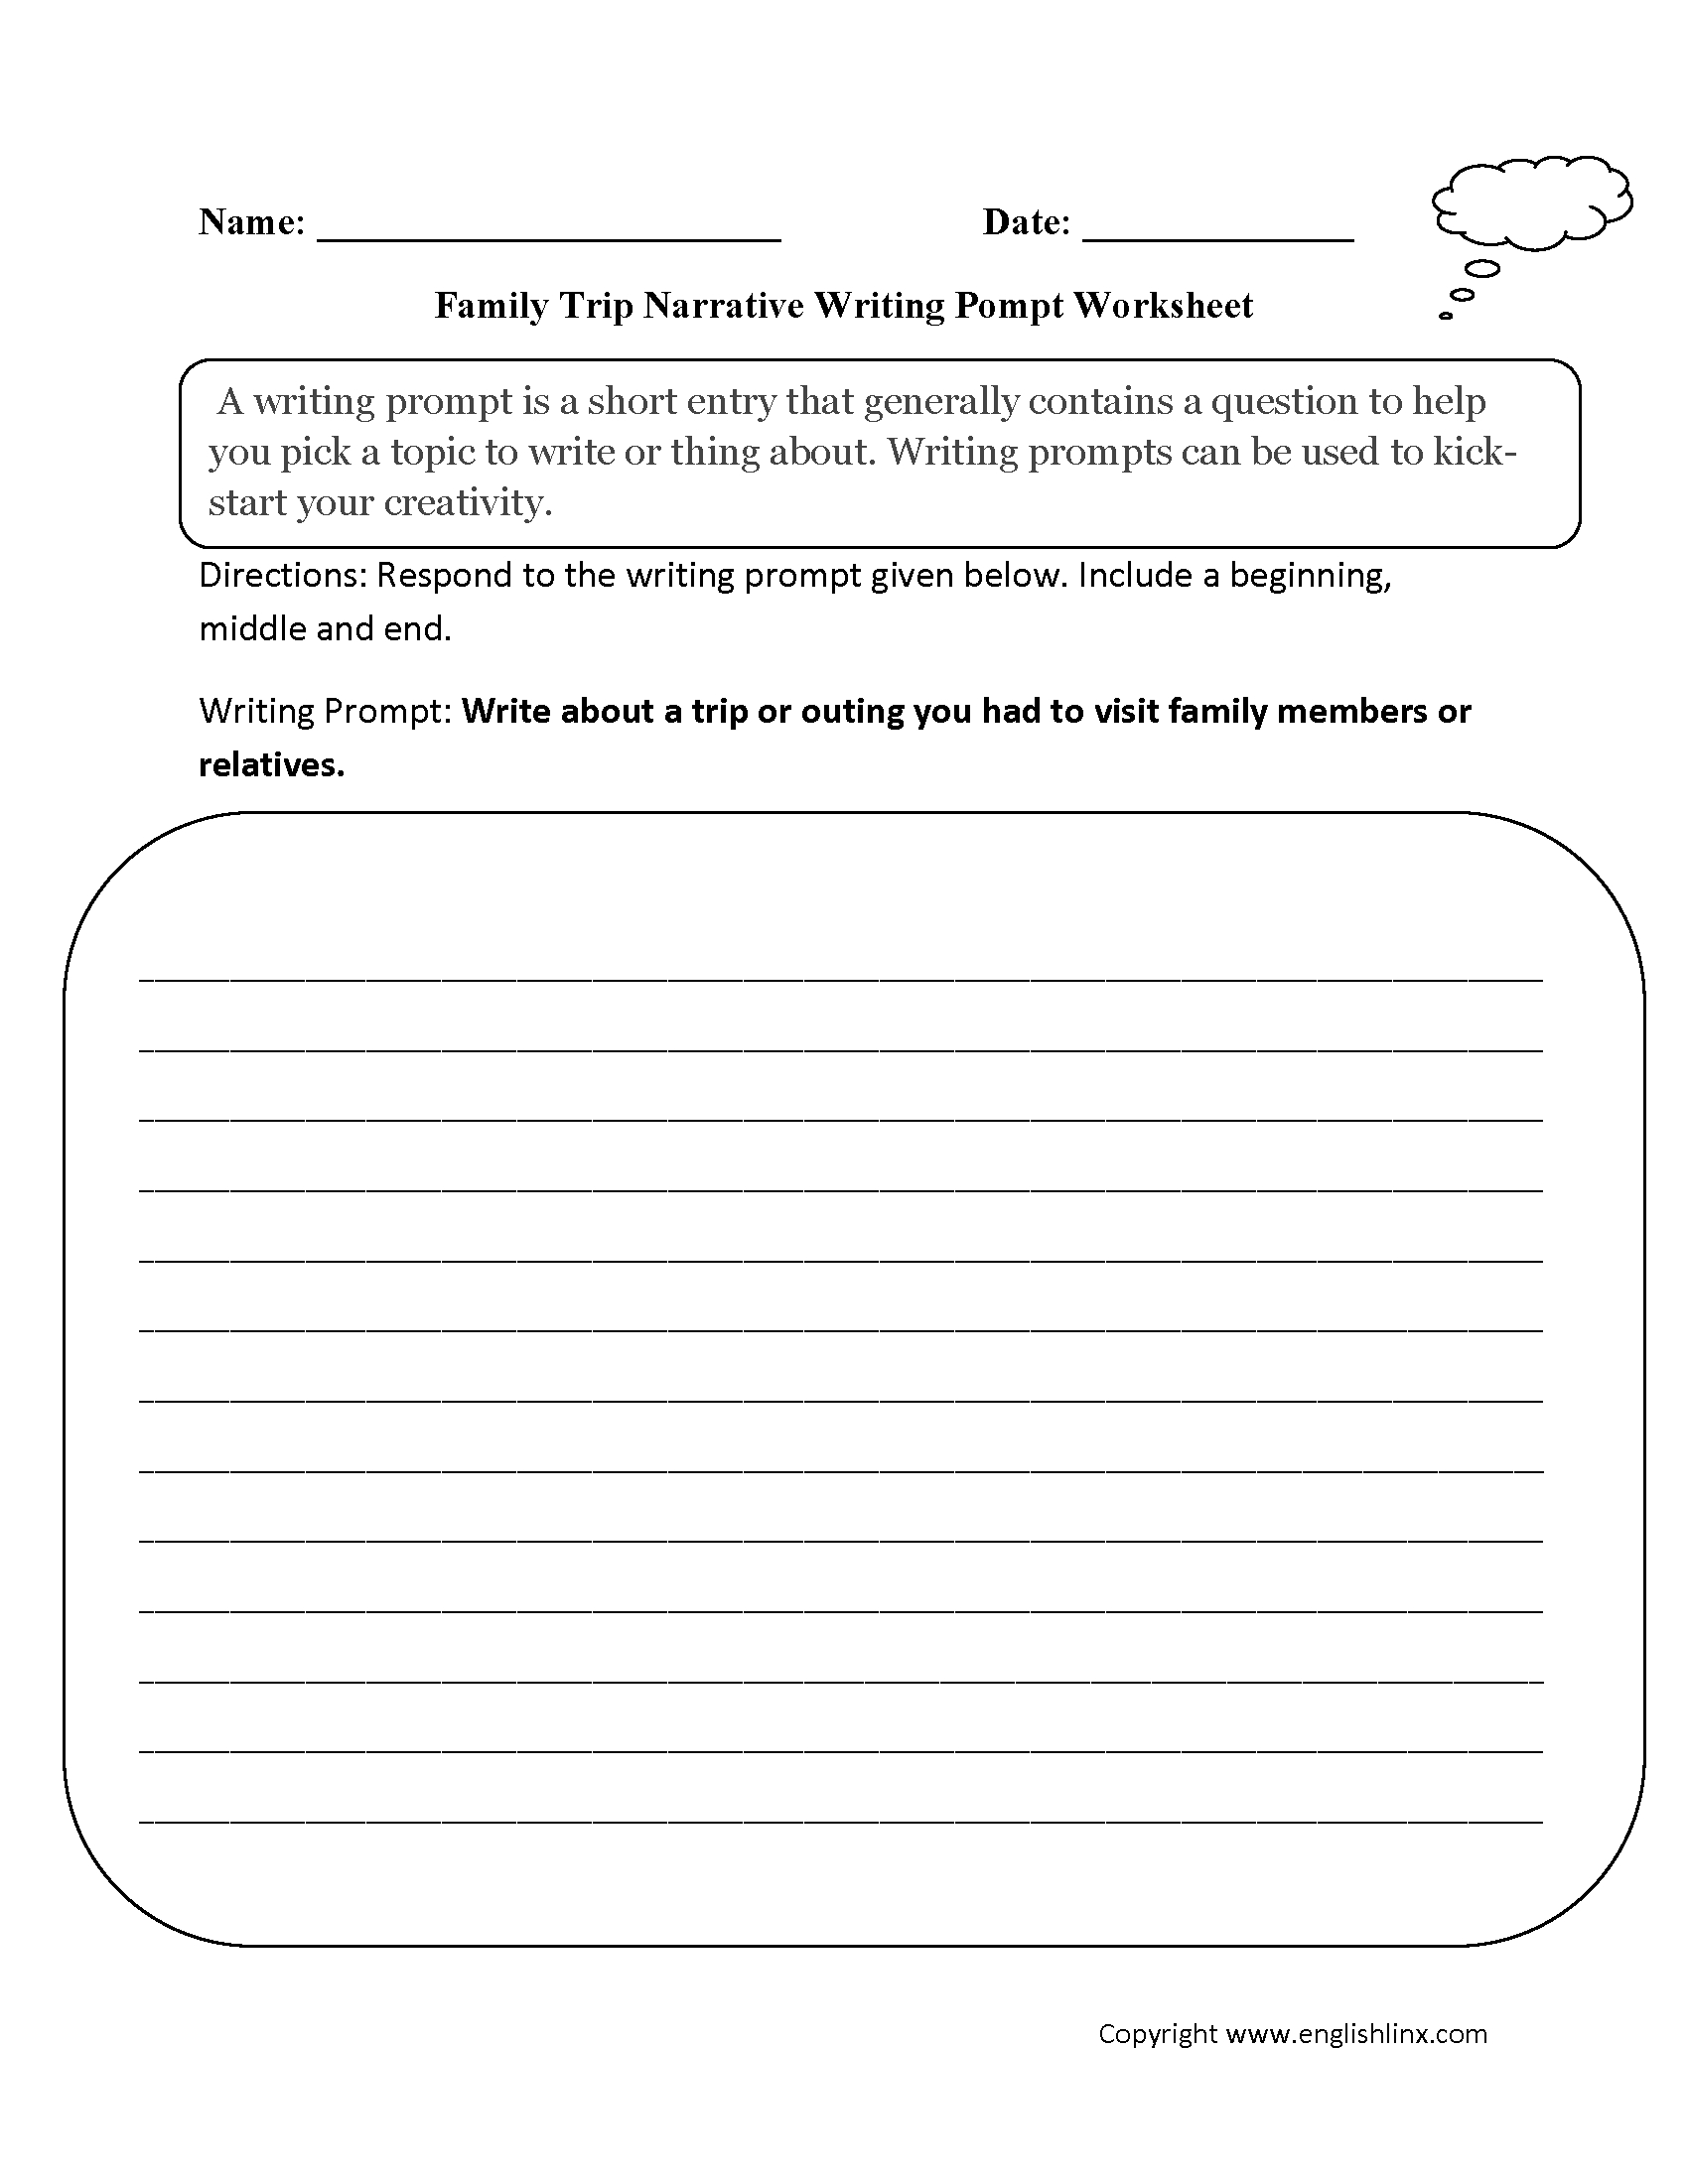 Englishlinx | Writing Prompts Worksheets - Free Printable Writing Prompts For Middle School